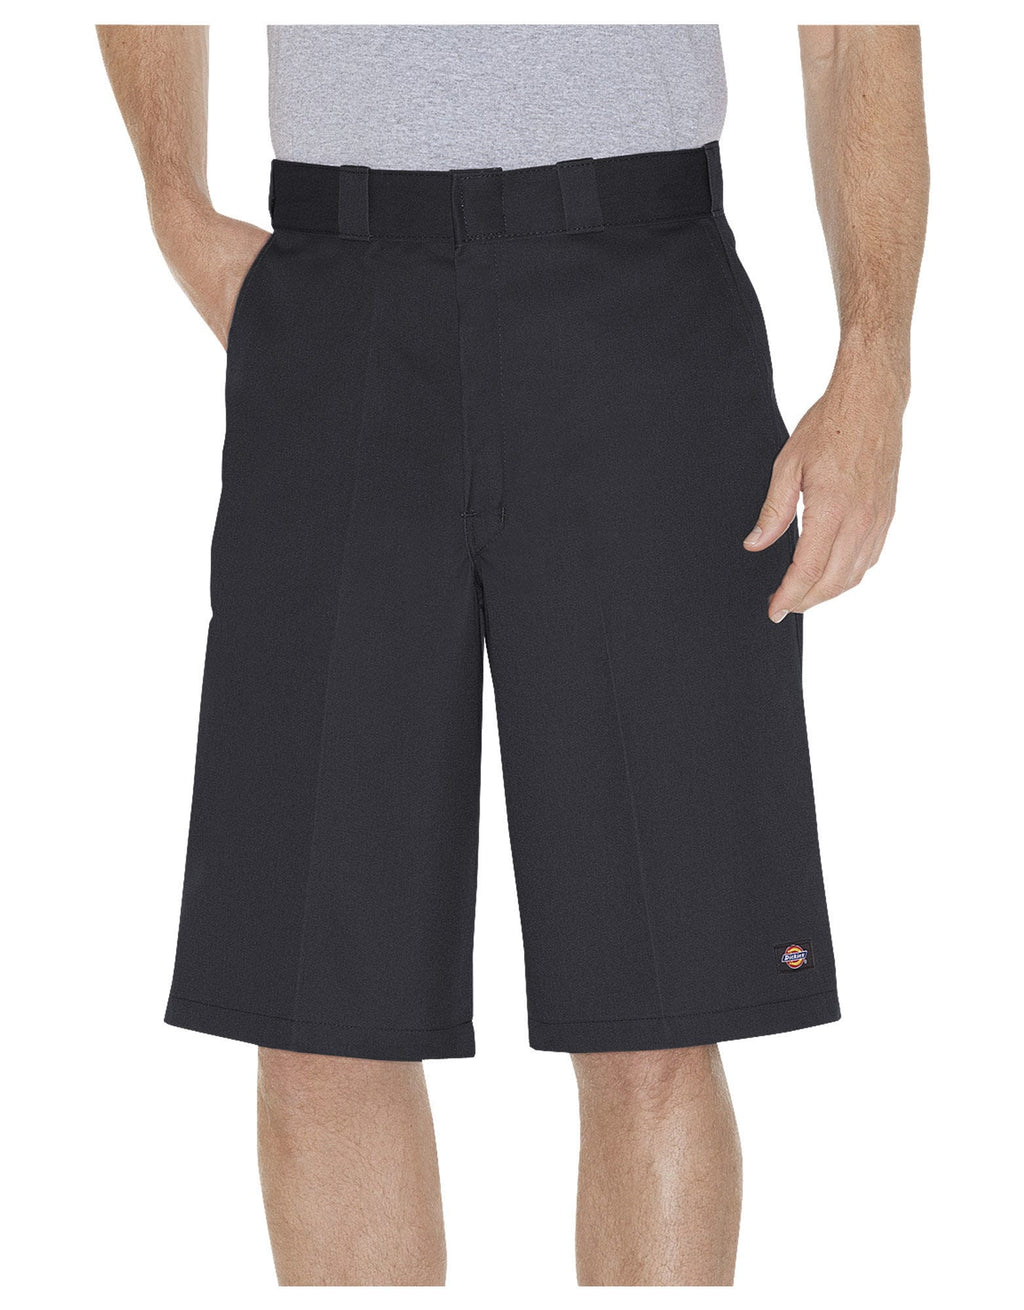 Dickies Men's Multi-Use Pocket Work Short Closeout-1